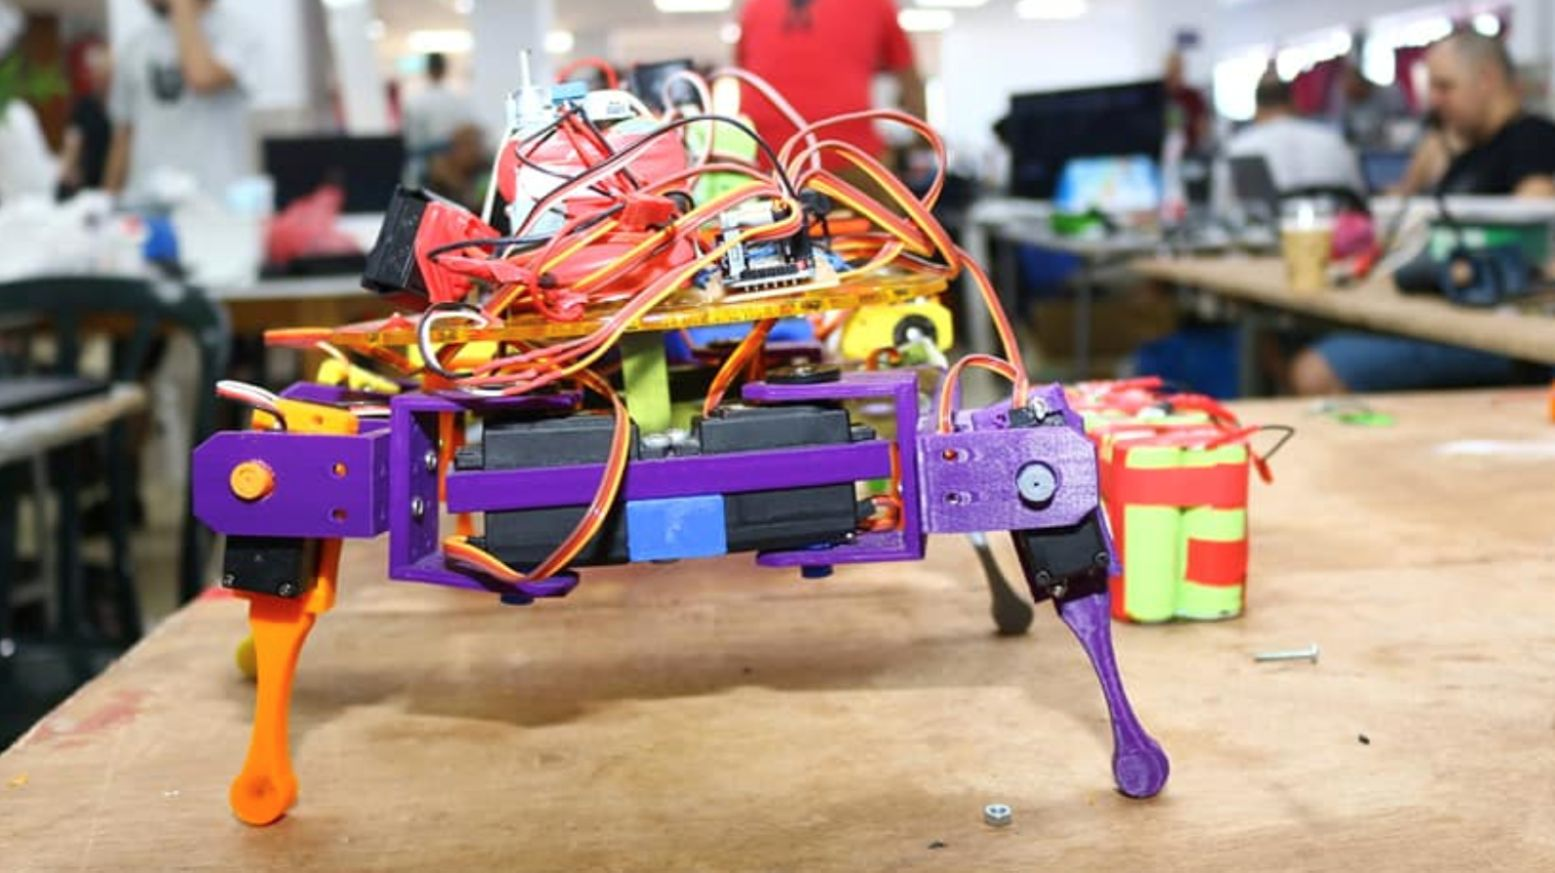 A musical spider bot was one of the inventions made at Geekcon 2018. Photo by Ilan Levy